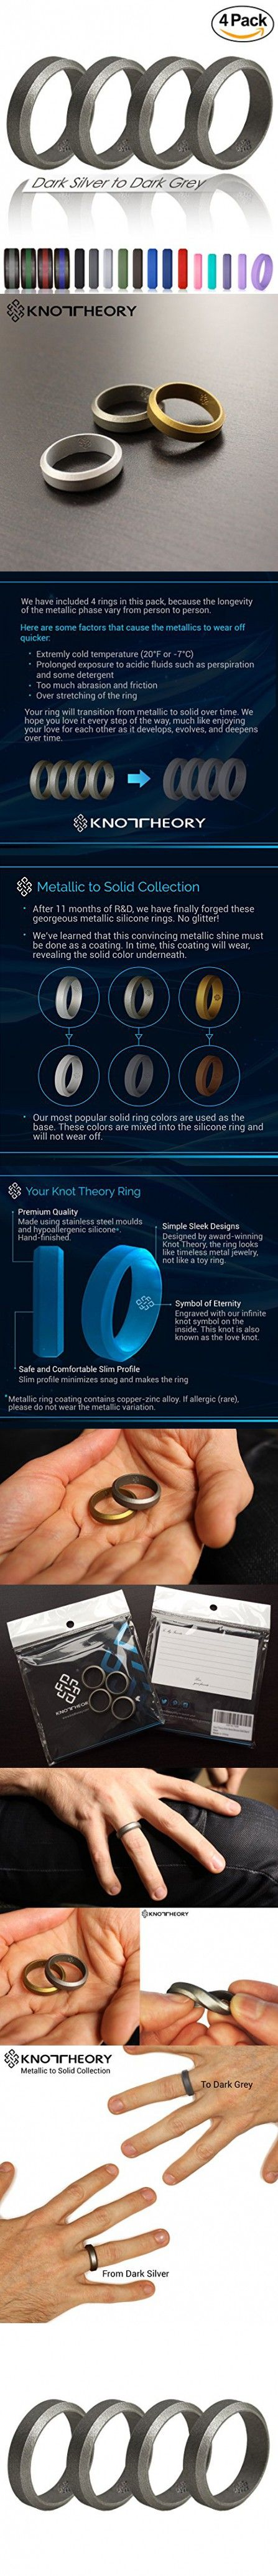 Knot Theory Dark Silver to Dark Grey Silicone Wedding Rings 4 Pack (Bevel Design, Size 10) 6mm Band for Superior Comfort, Style, and Safety